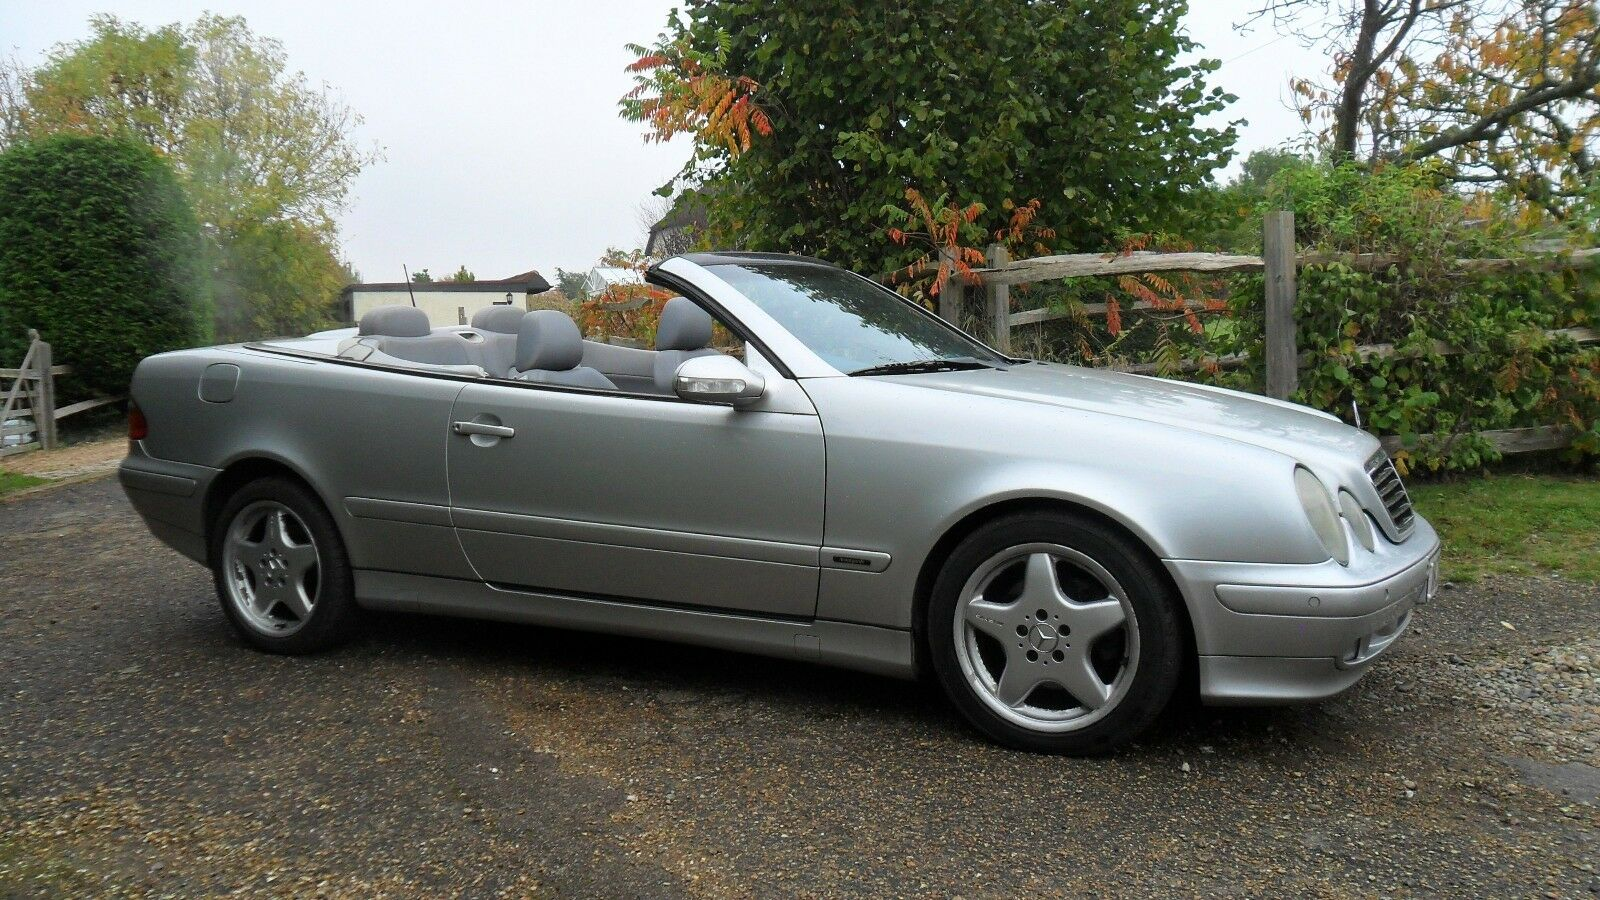 mercedes 320 2002 clk convertible with full service history 1 picclick uk. Black Bedroom Furniture Sets. Home Design Ideas